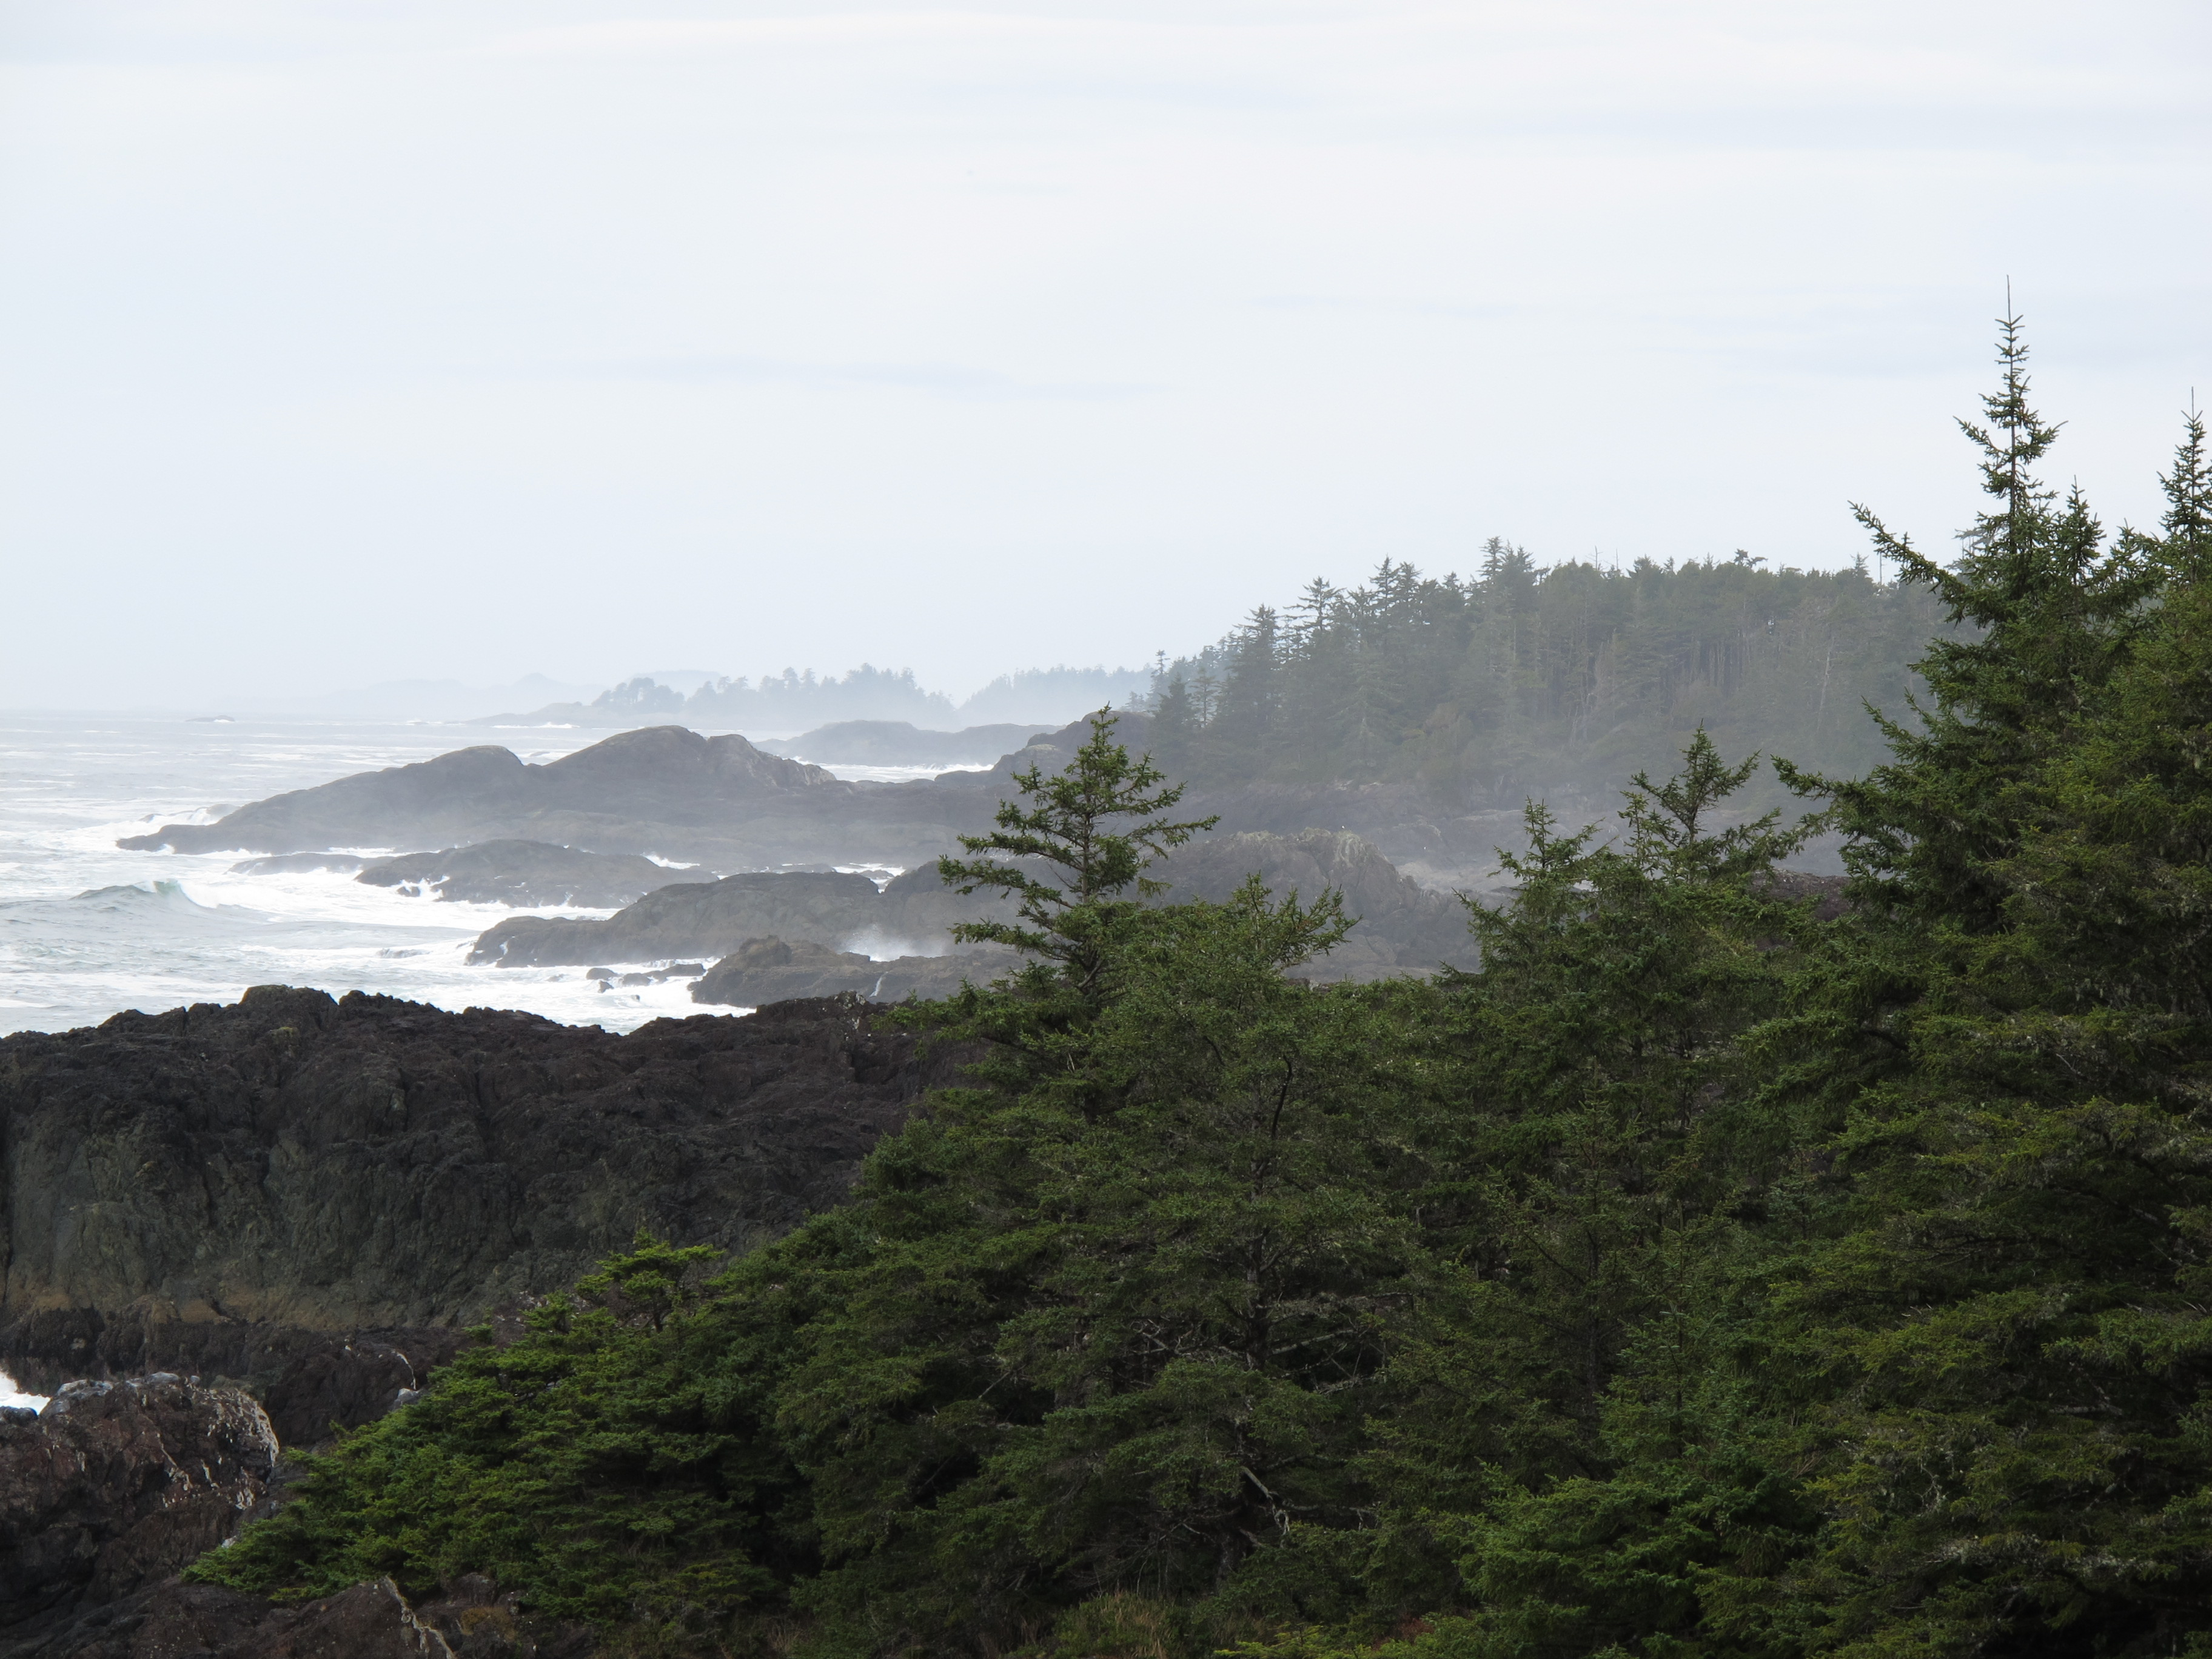 Rocky coastline along the Wild Pacific Trail in Ucluelet, BC